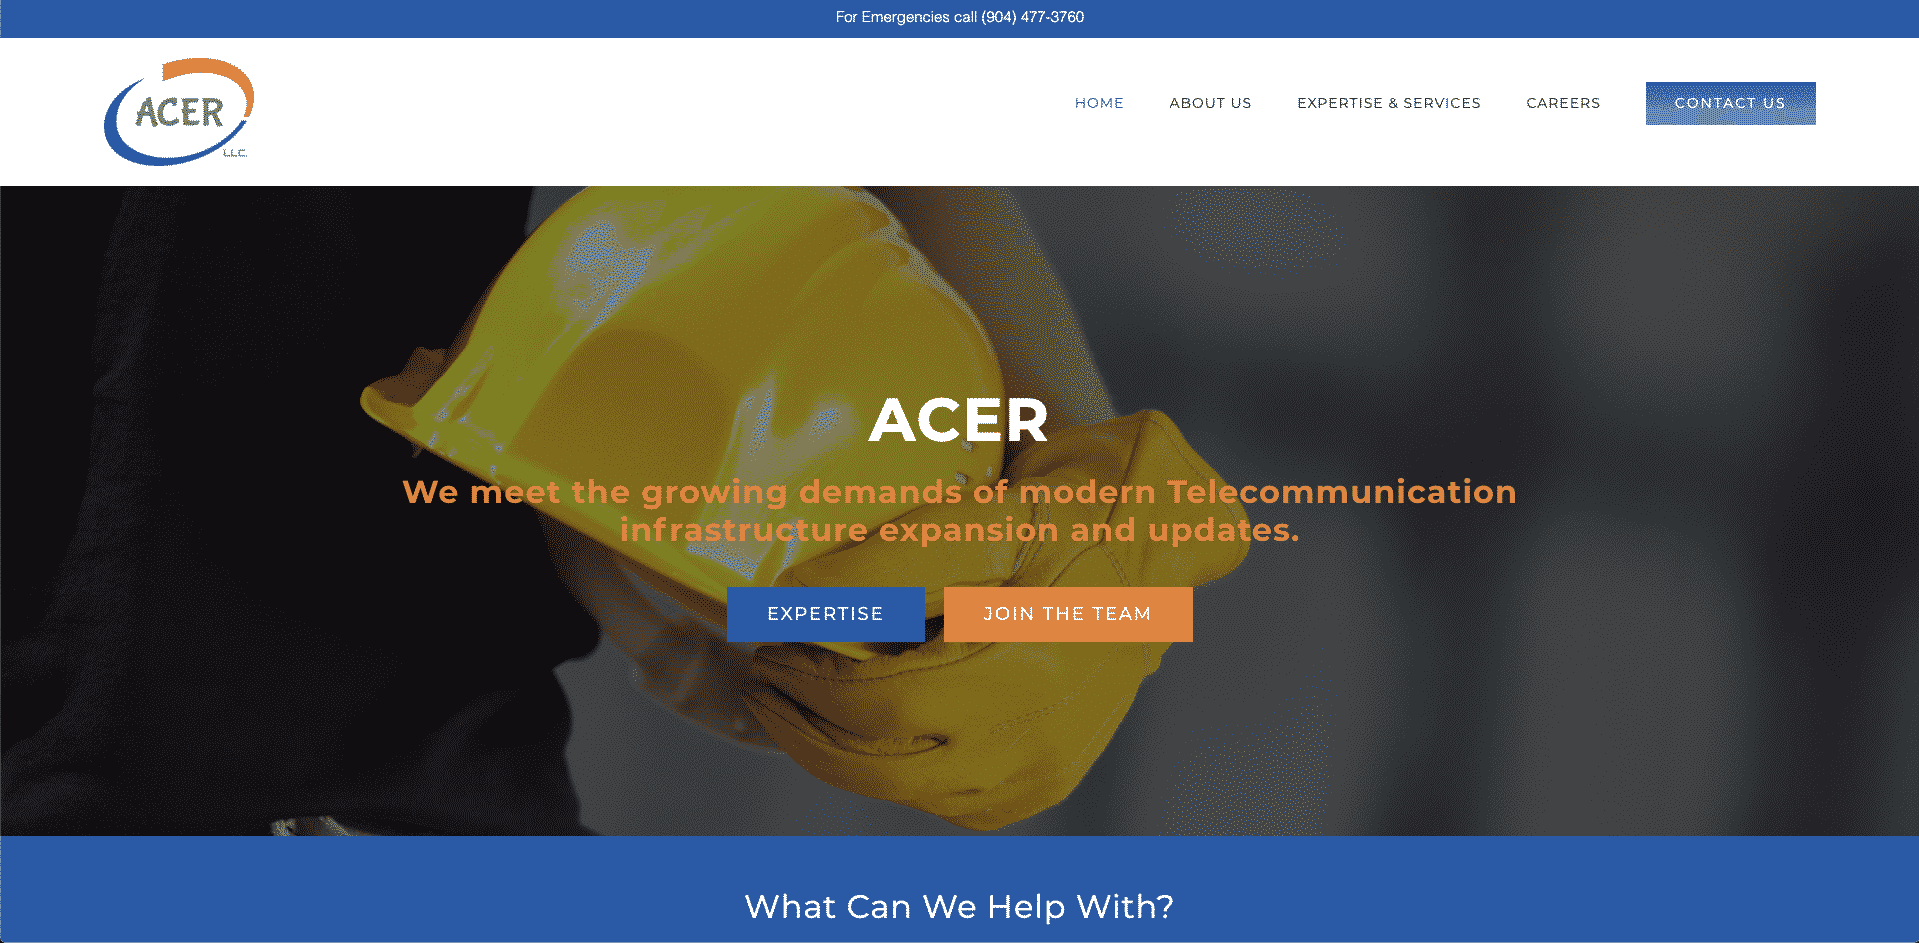 acer-home-page